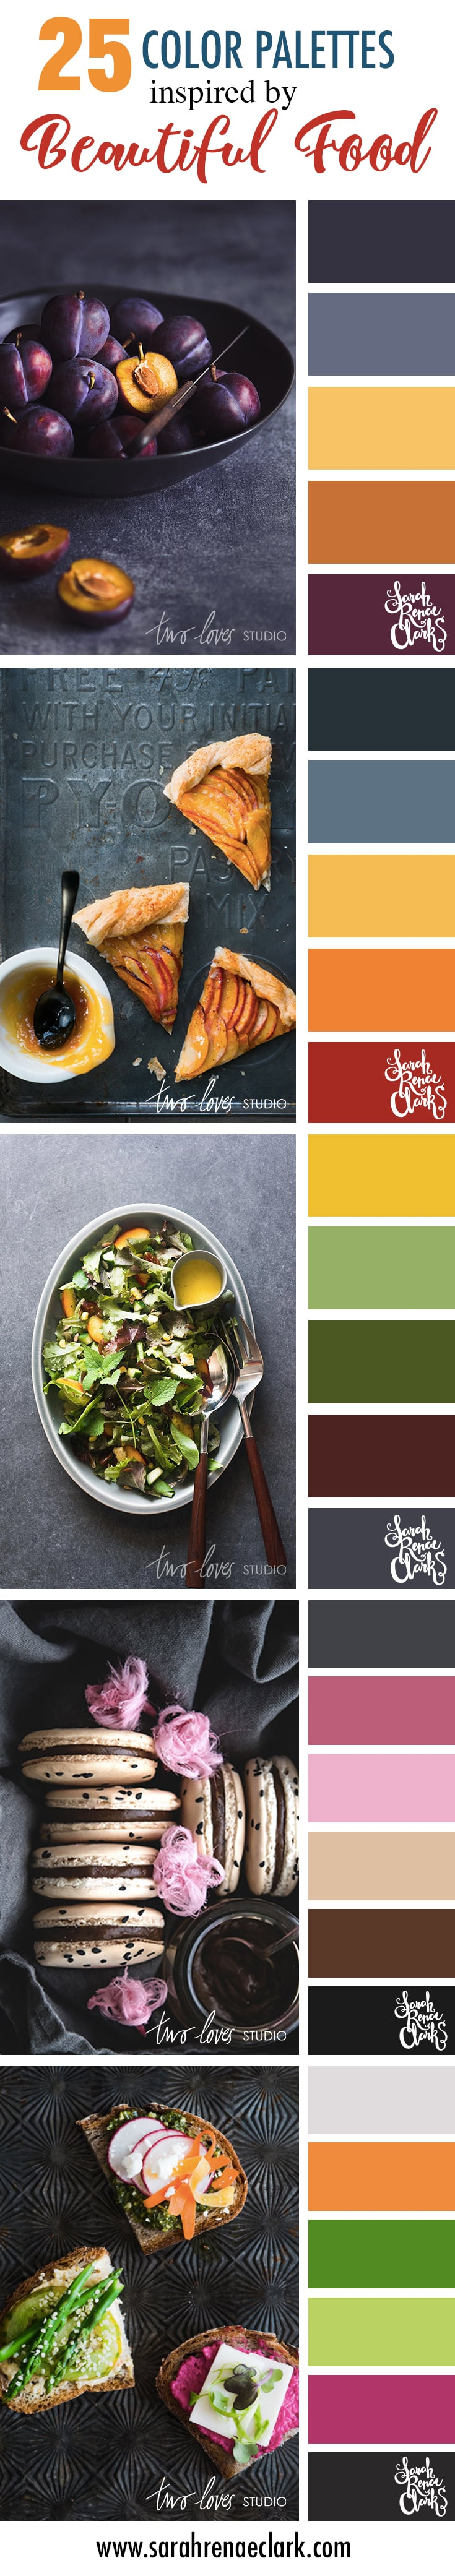 25 Color Palettes Inspired by Beautiful Food